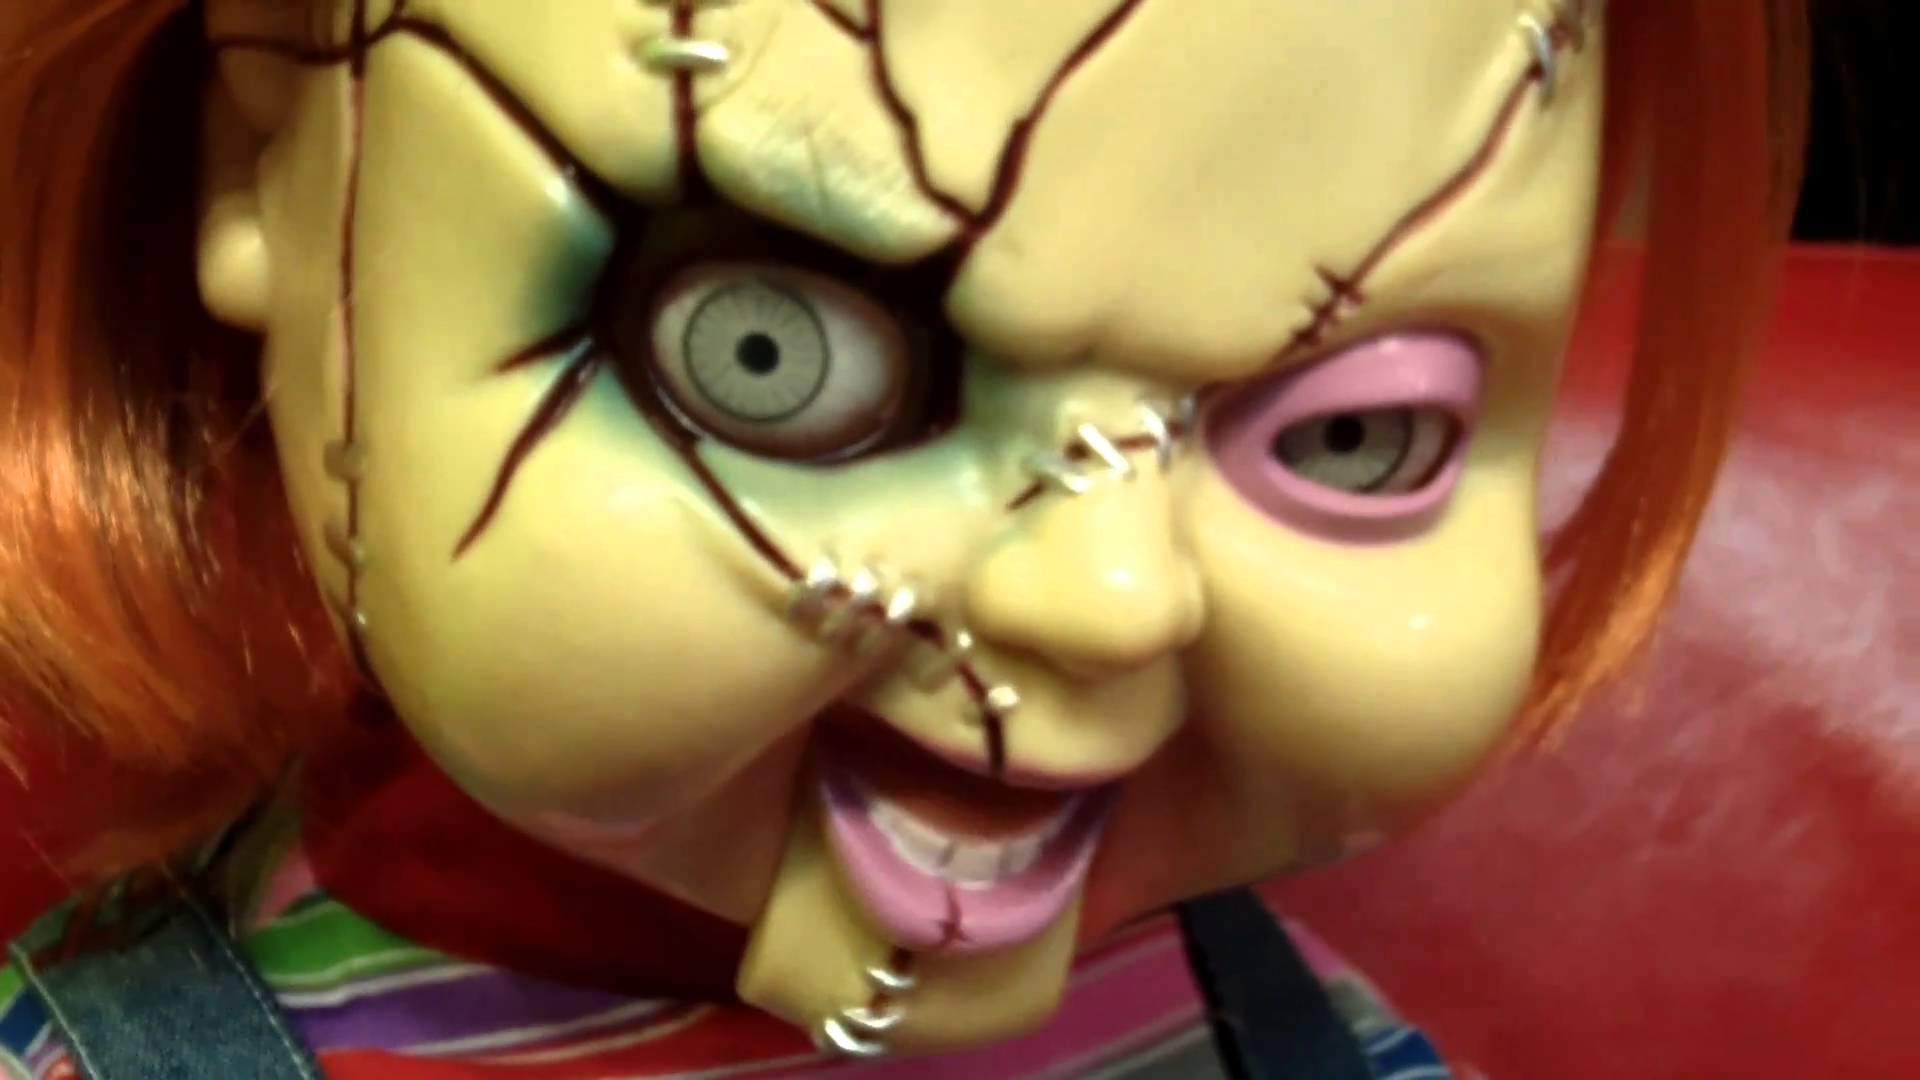 Chucky SCARY Animated Life-Size Talking Doll by Mike Mozart of  TheToyChannel – YouTube